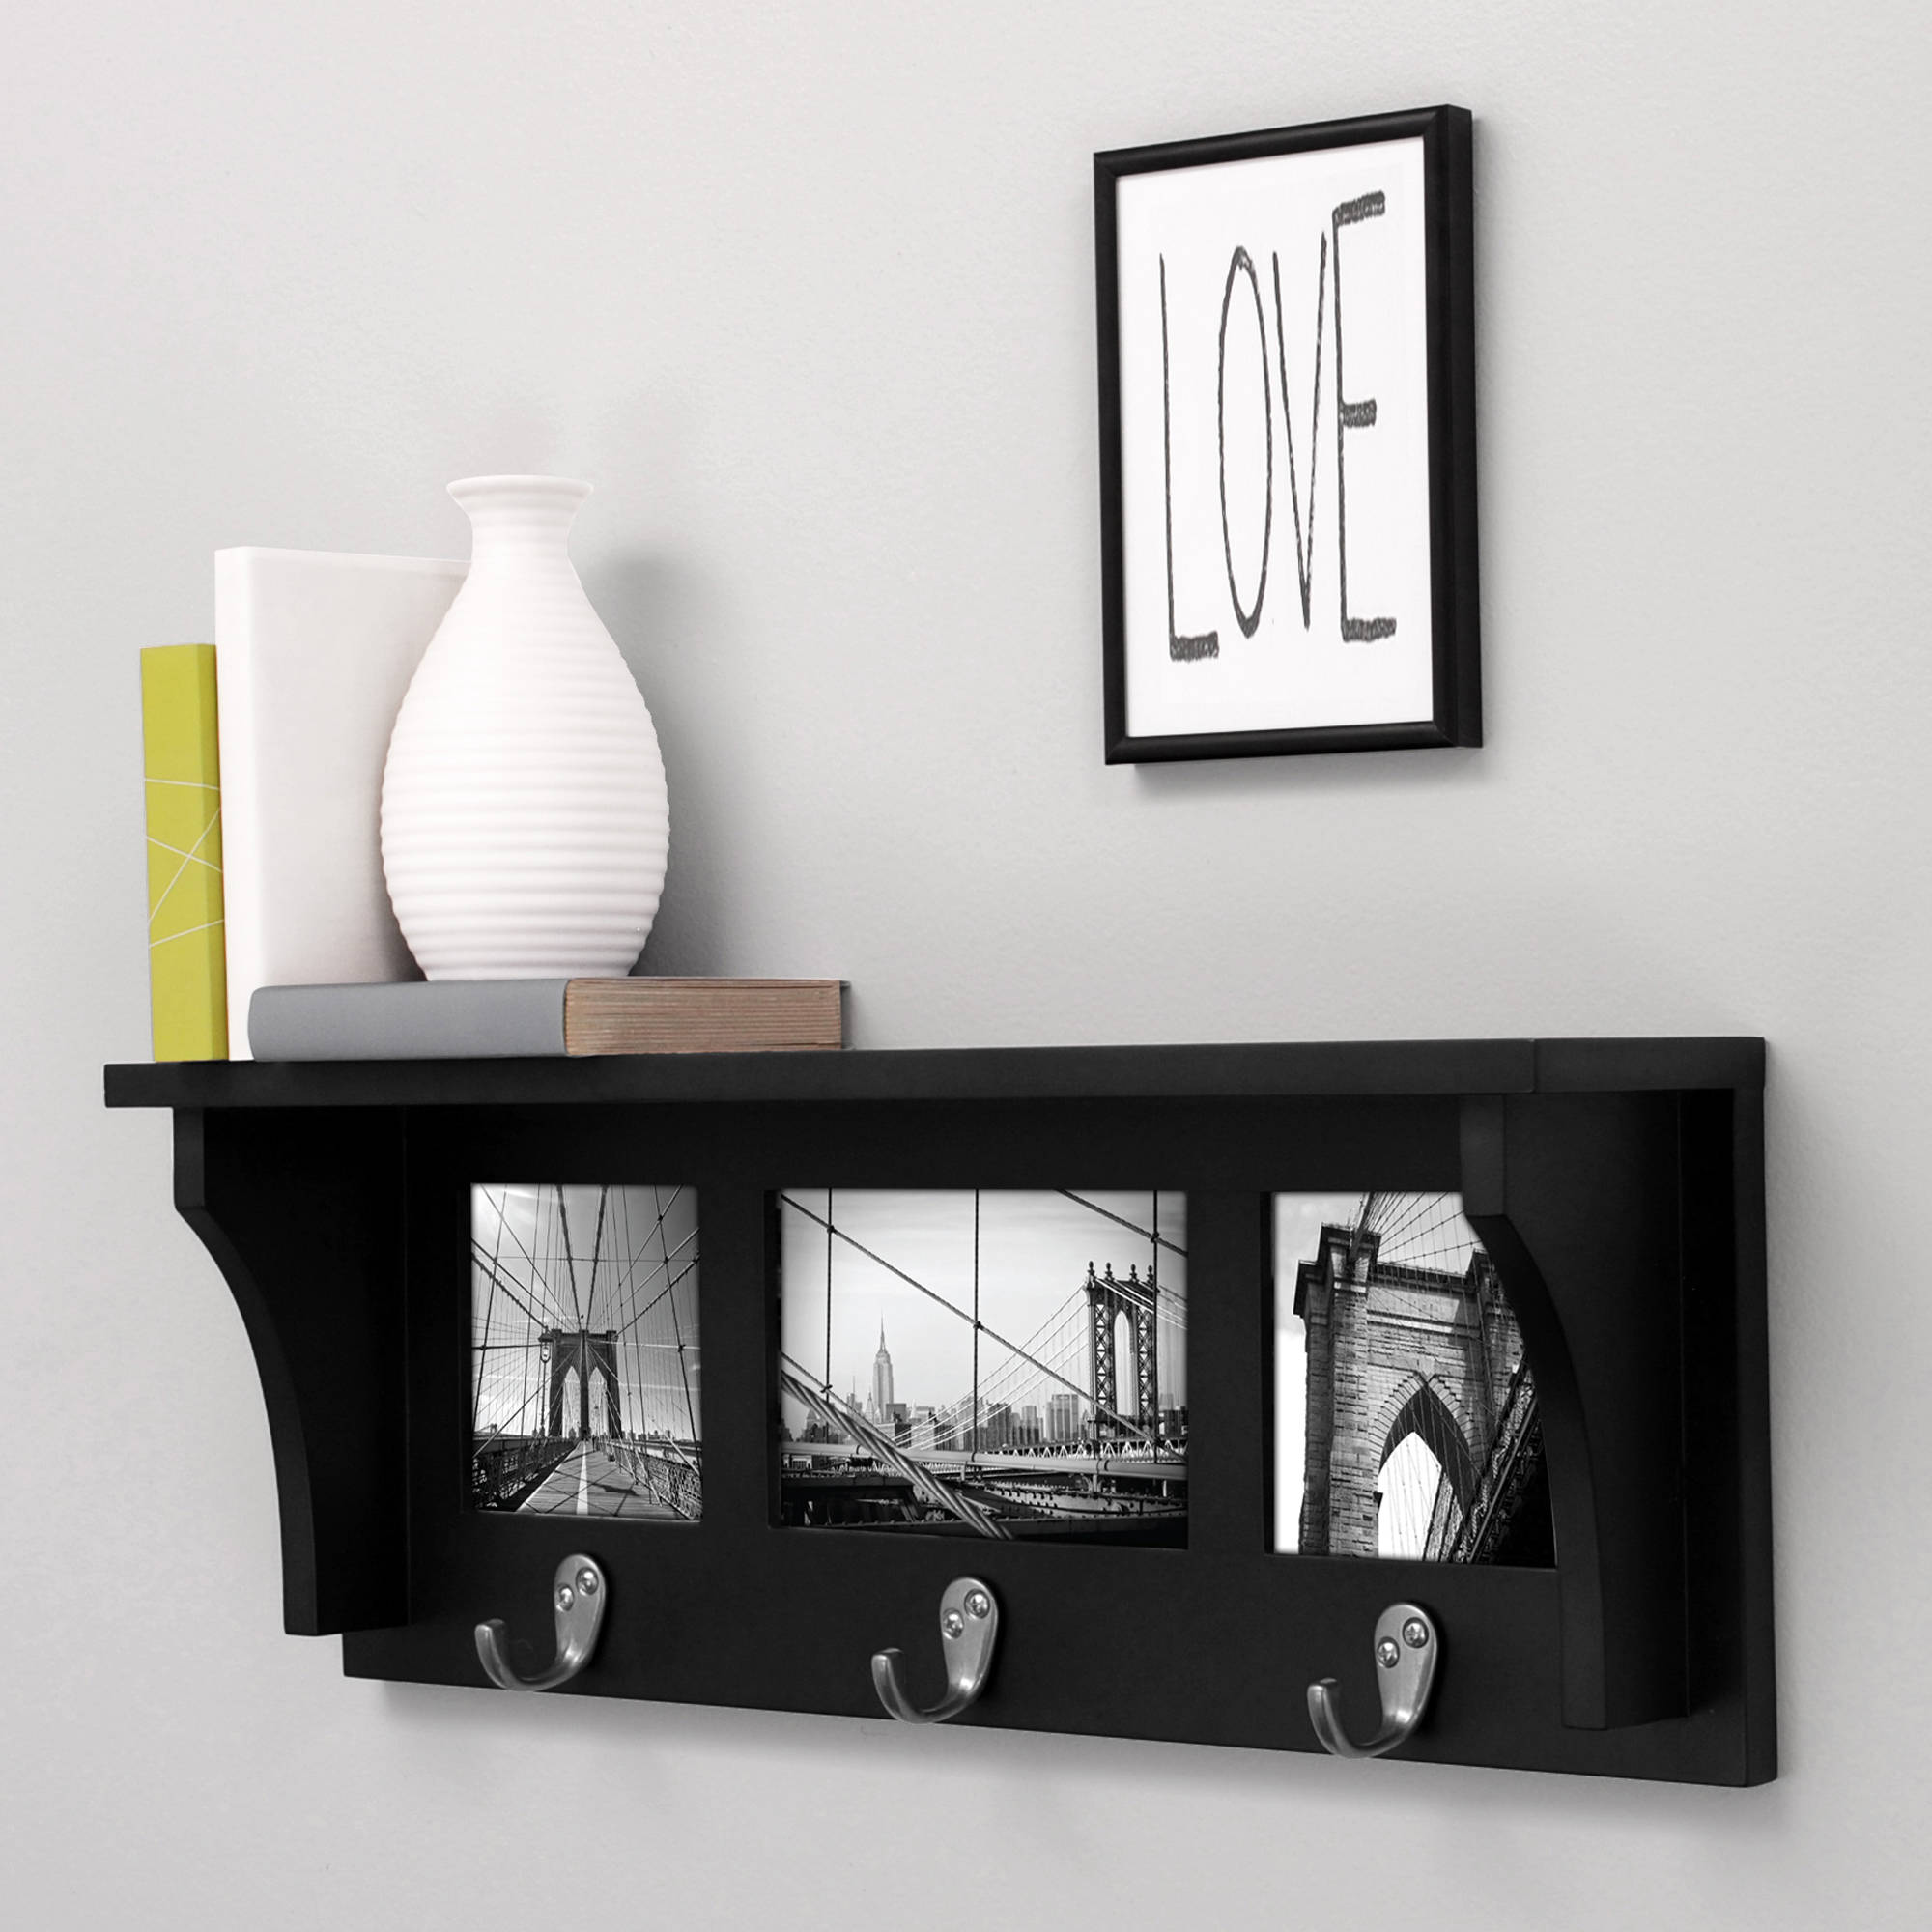 wall white target ikea interior rack shelf hook